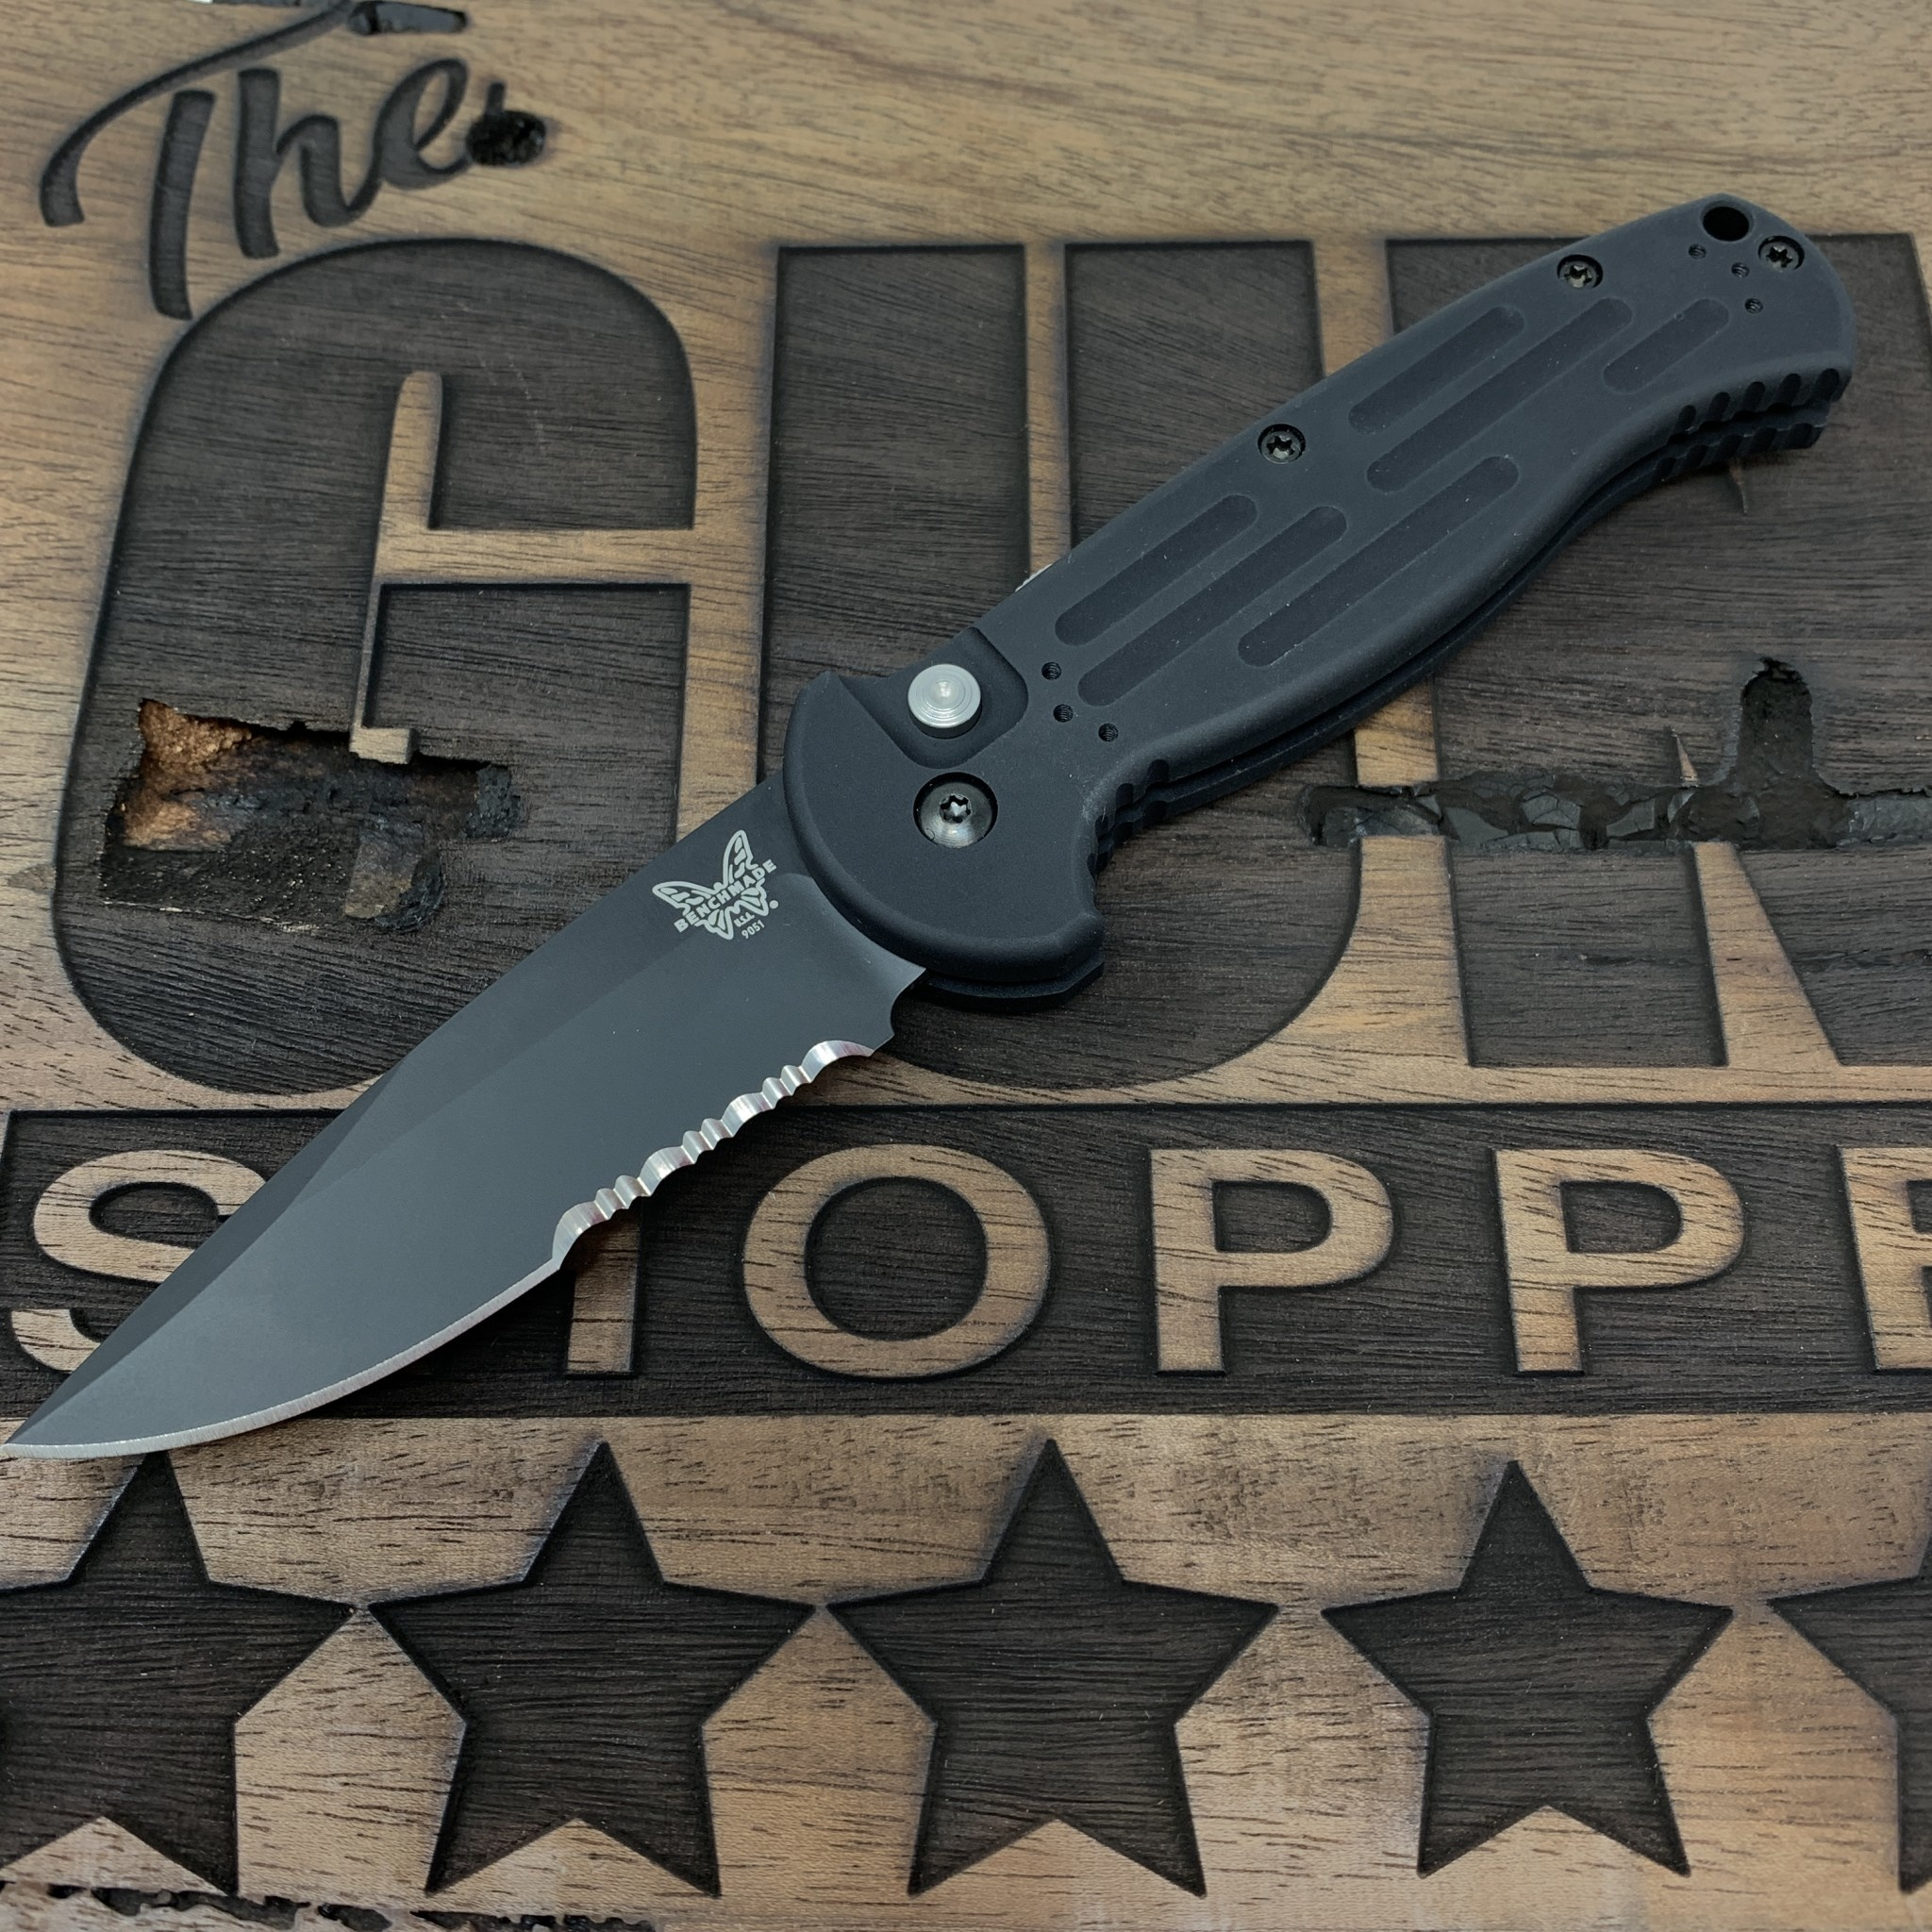 Benchmade Benchmade 9051SBK AFO II Tanto Serated Automatic Knife